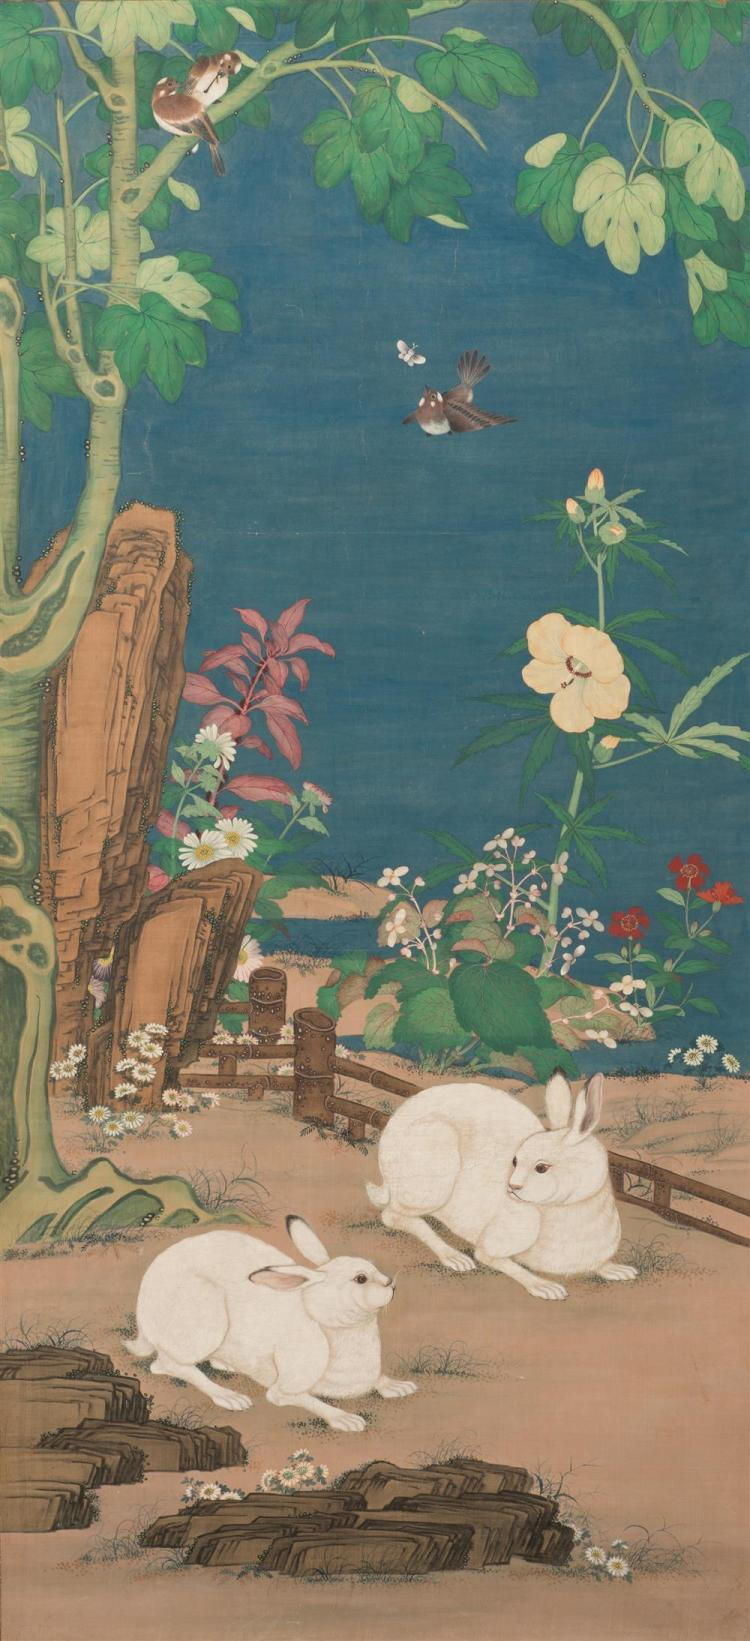 Chinese Painting on Paper, depicting two rabbits among birds in a colorful landscape setting